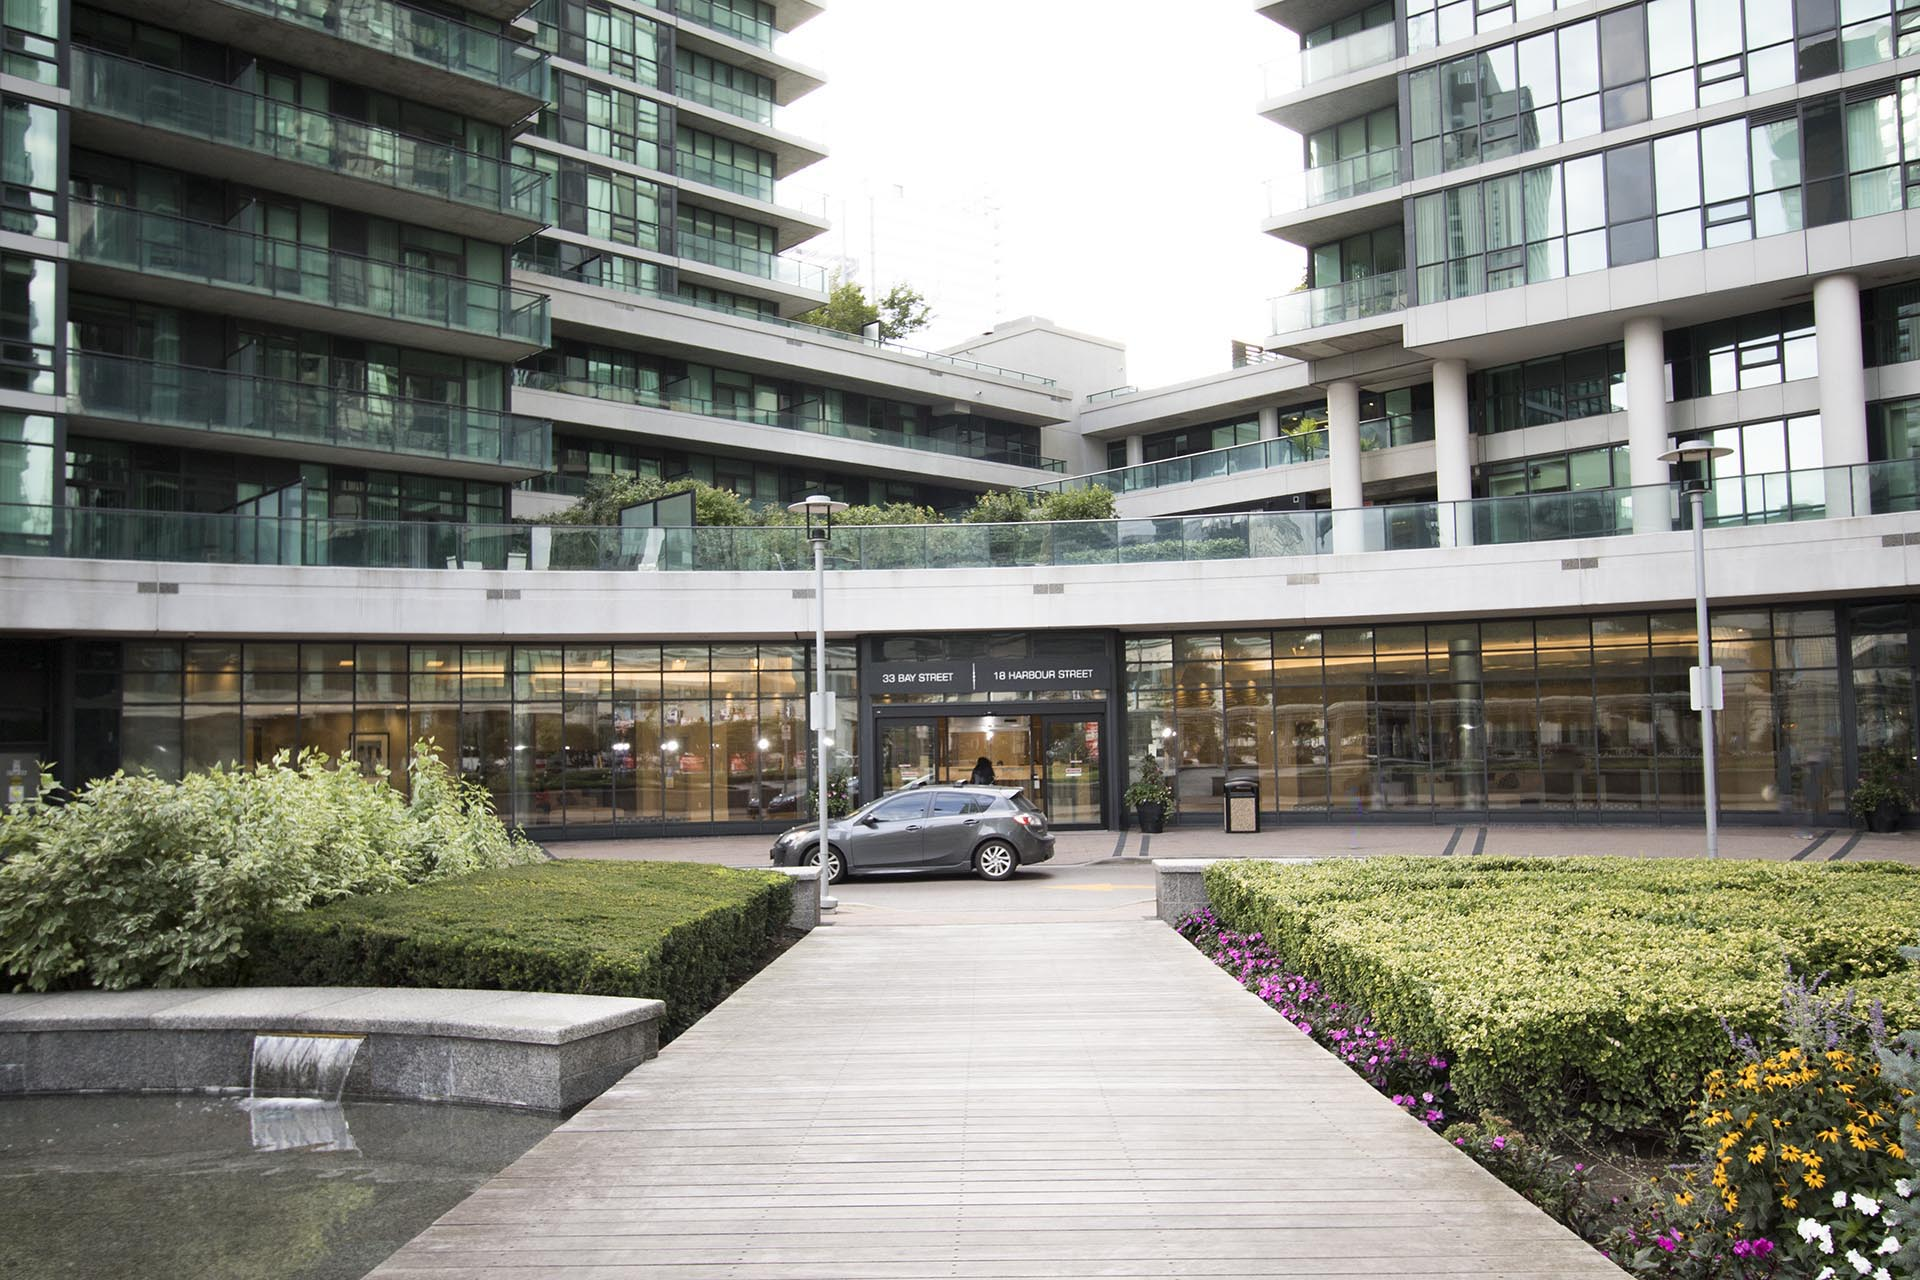 #2103-18 Harbour Street, Toronto - For Lease $2450/month